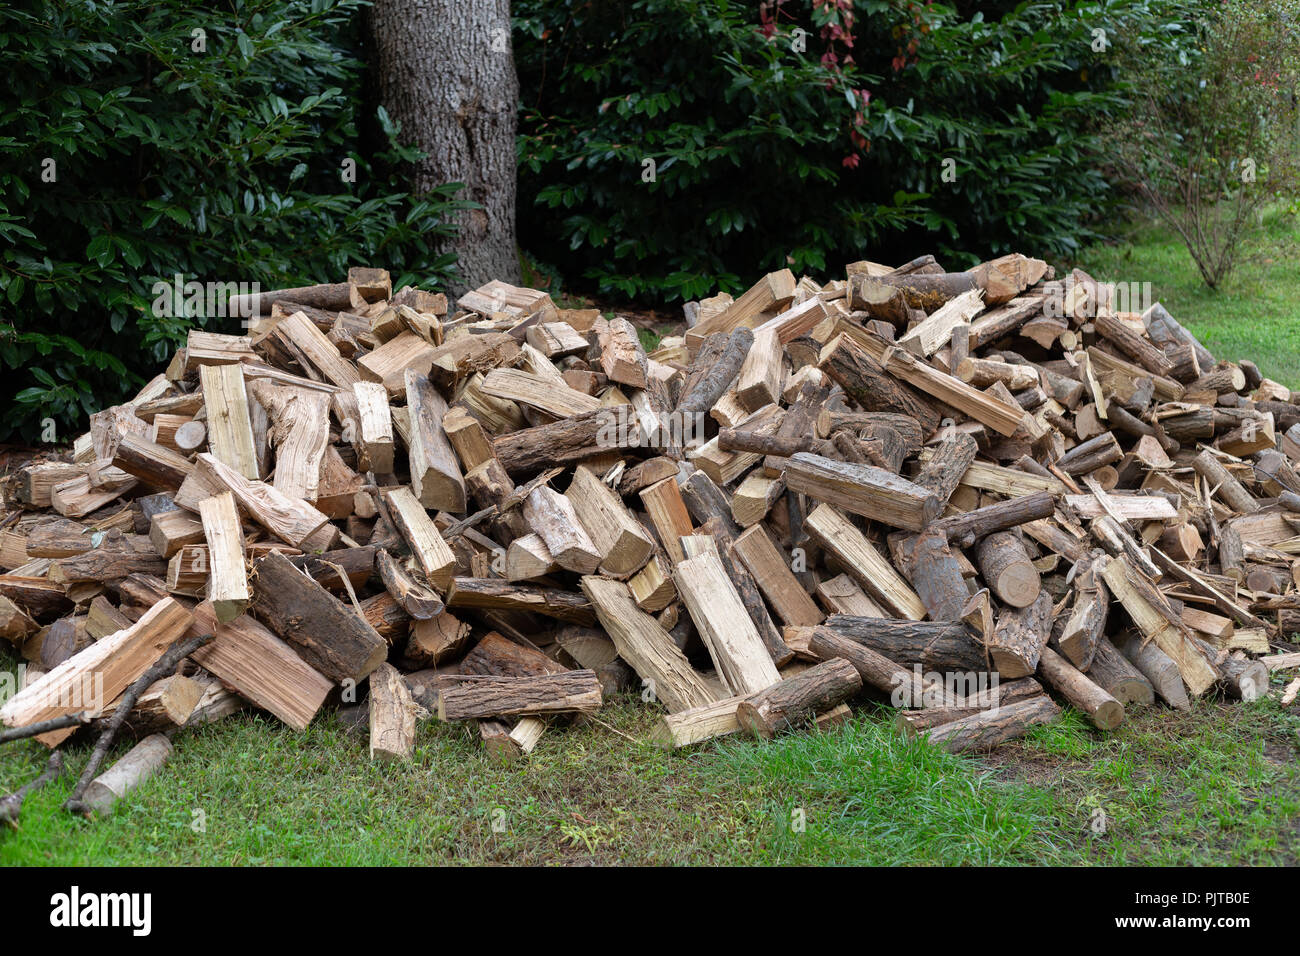 Stack of Firewood on grass - Stock Image